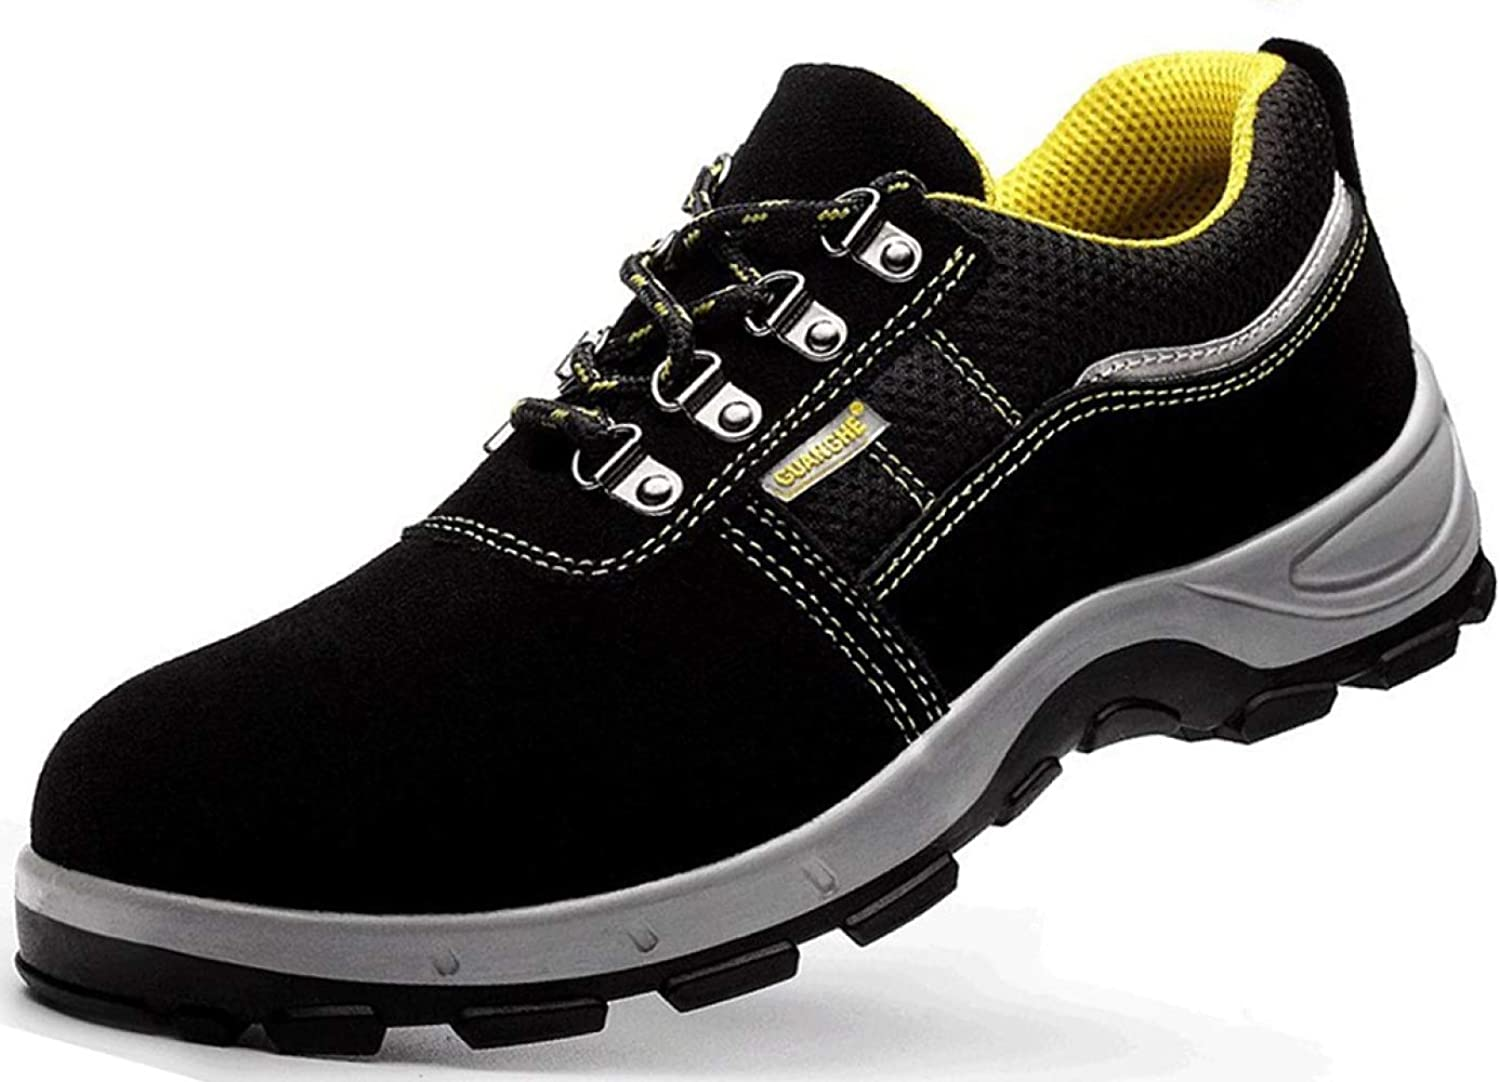 RSHENG shoes For Men's Steel Toe Work Boots Warm Lining Martin Boots Outdoor Leisure Walking shoes